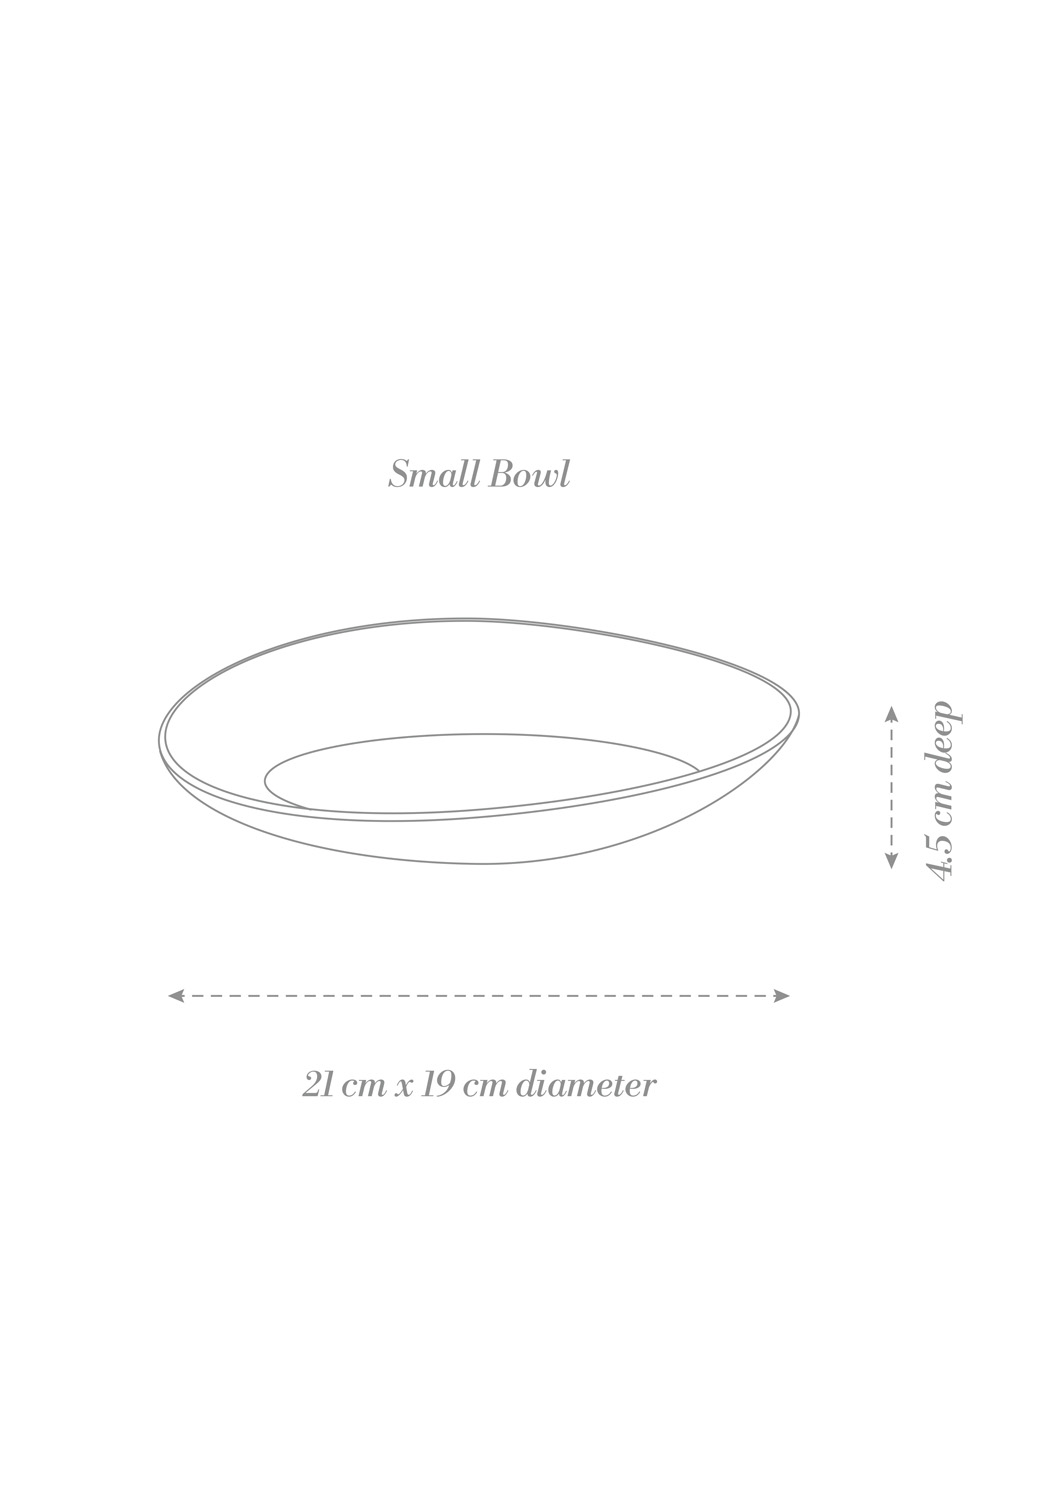 Sashimi Small Bowl Product Diagram